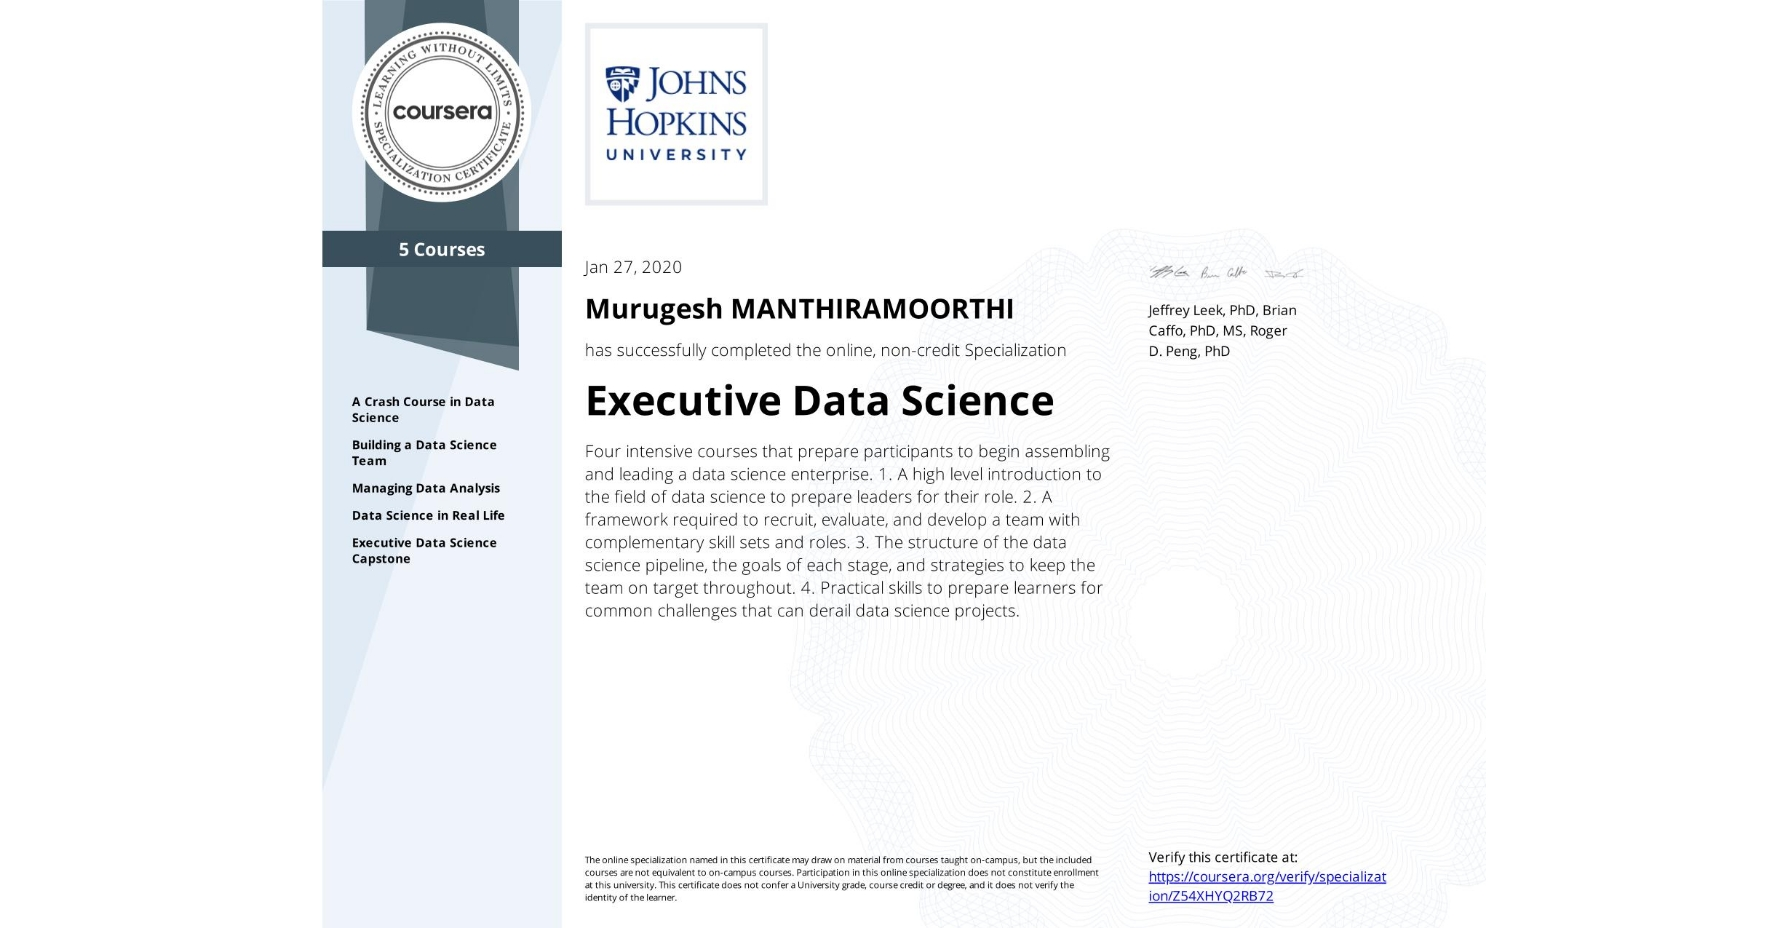 View certificate for Murugesh Manthiramoorthi, Executive Data Science, offered through Coursera. Four intensive courses that prepare participants to begin assembling and leading a data science enterprise.    1. A high level introduction to the field of data science to prepare leaders for their role. 2. A framework required to recruit, evaluate, and develop a team with complementary skill sets and roles. 3. The structure of the data science pipeline, the goals of each stage, and strategies to keep the team on target throughout. 4. Practical skills to prepare learners for common challenges that can derail data science projects.